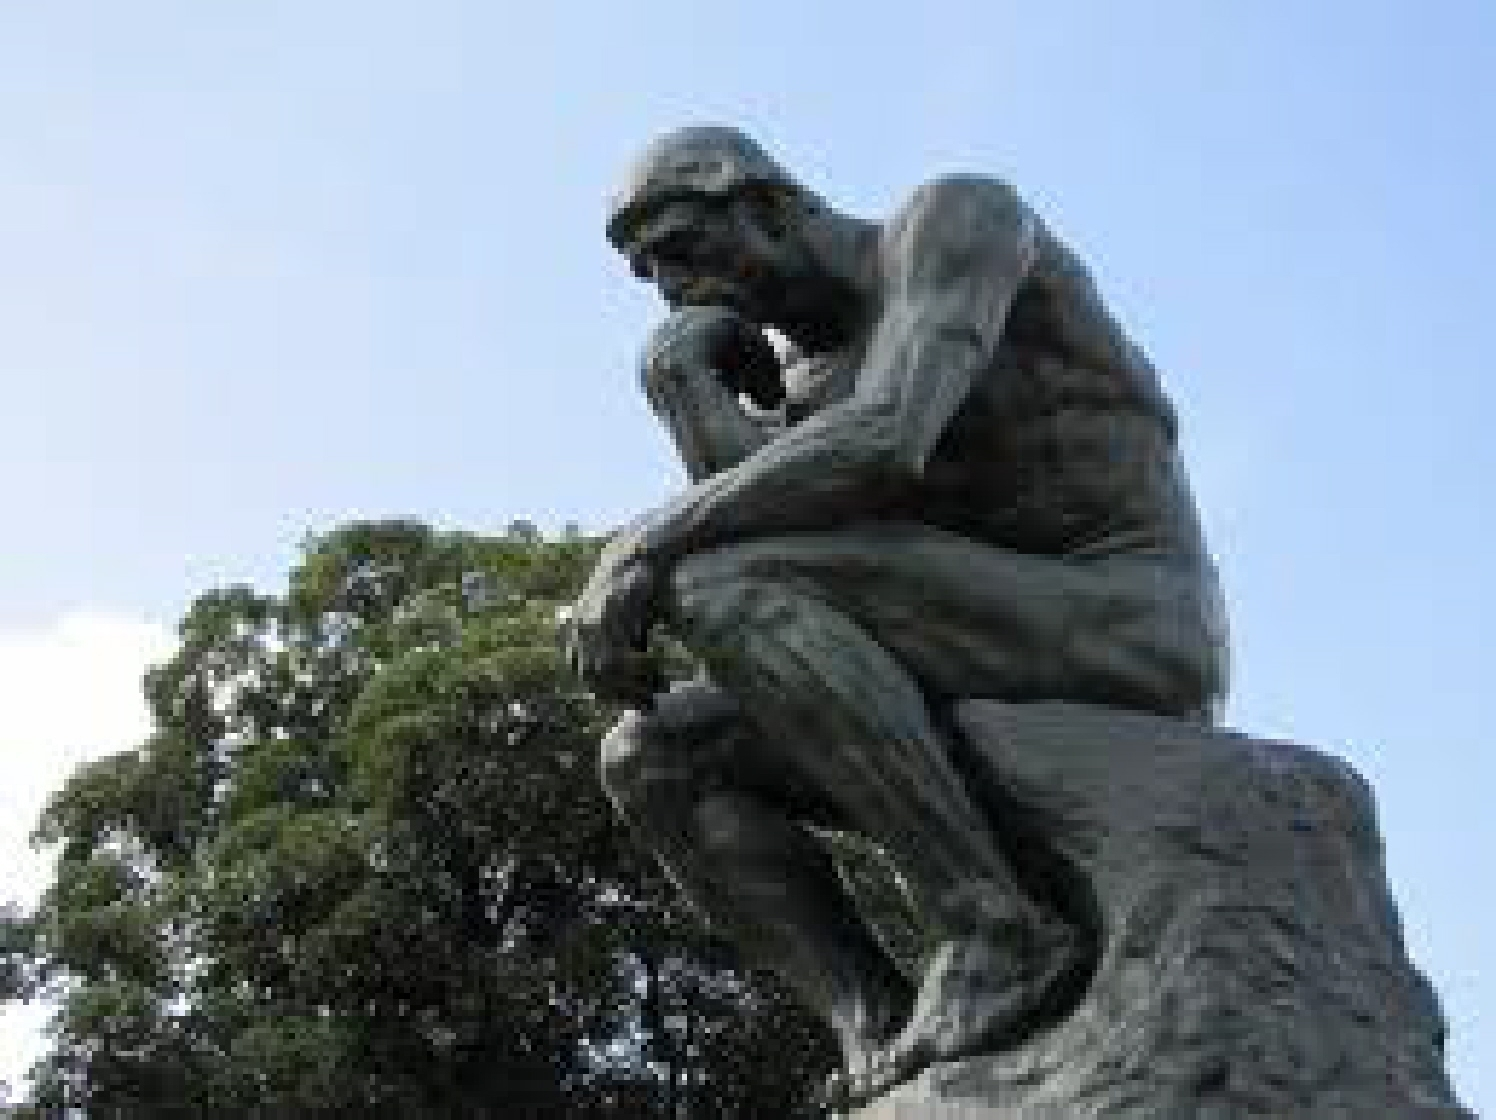 10 New Images Of The Thinker Statue FULL HD 1920×1080 For PC Background